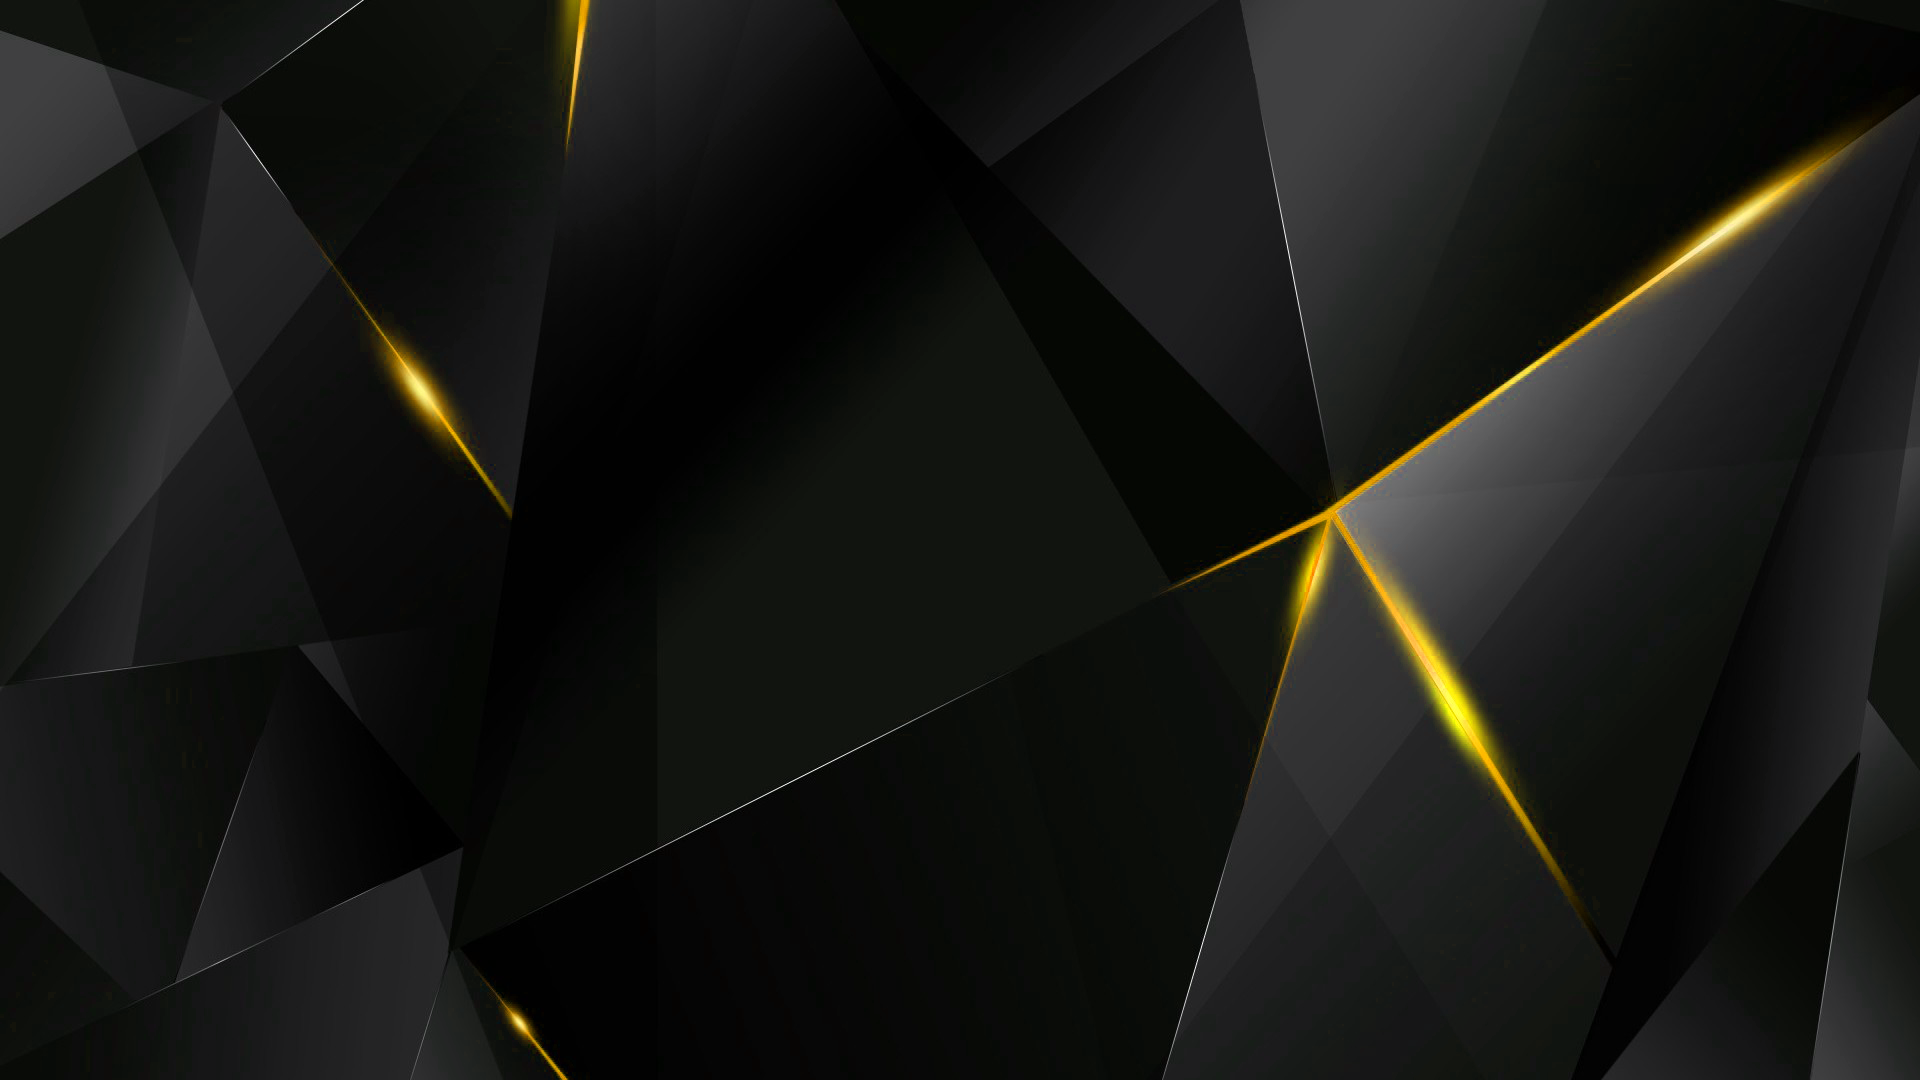 Wallpapers - Yellow Abstract Polygons (Black BG) by ...